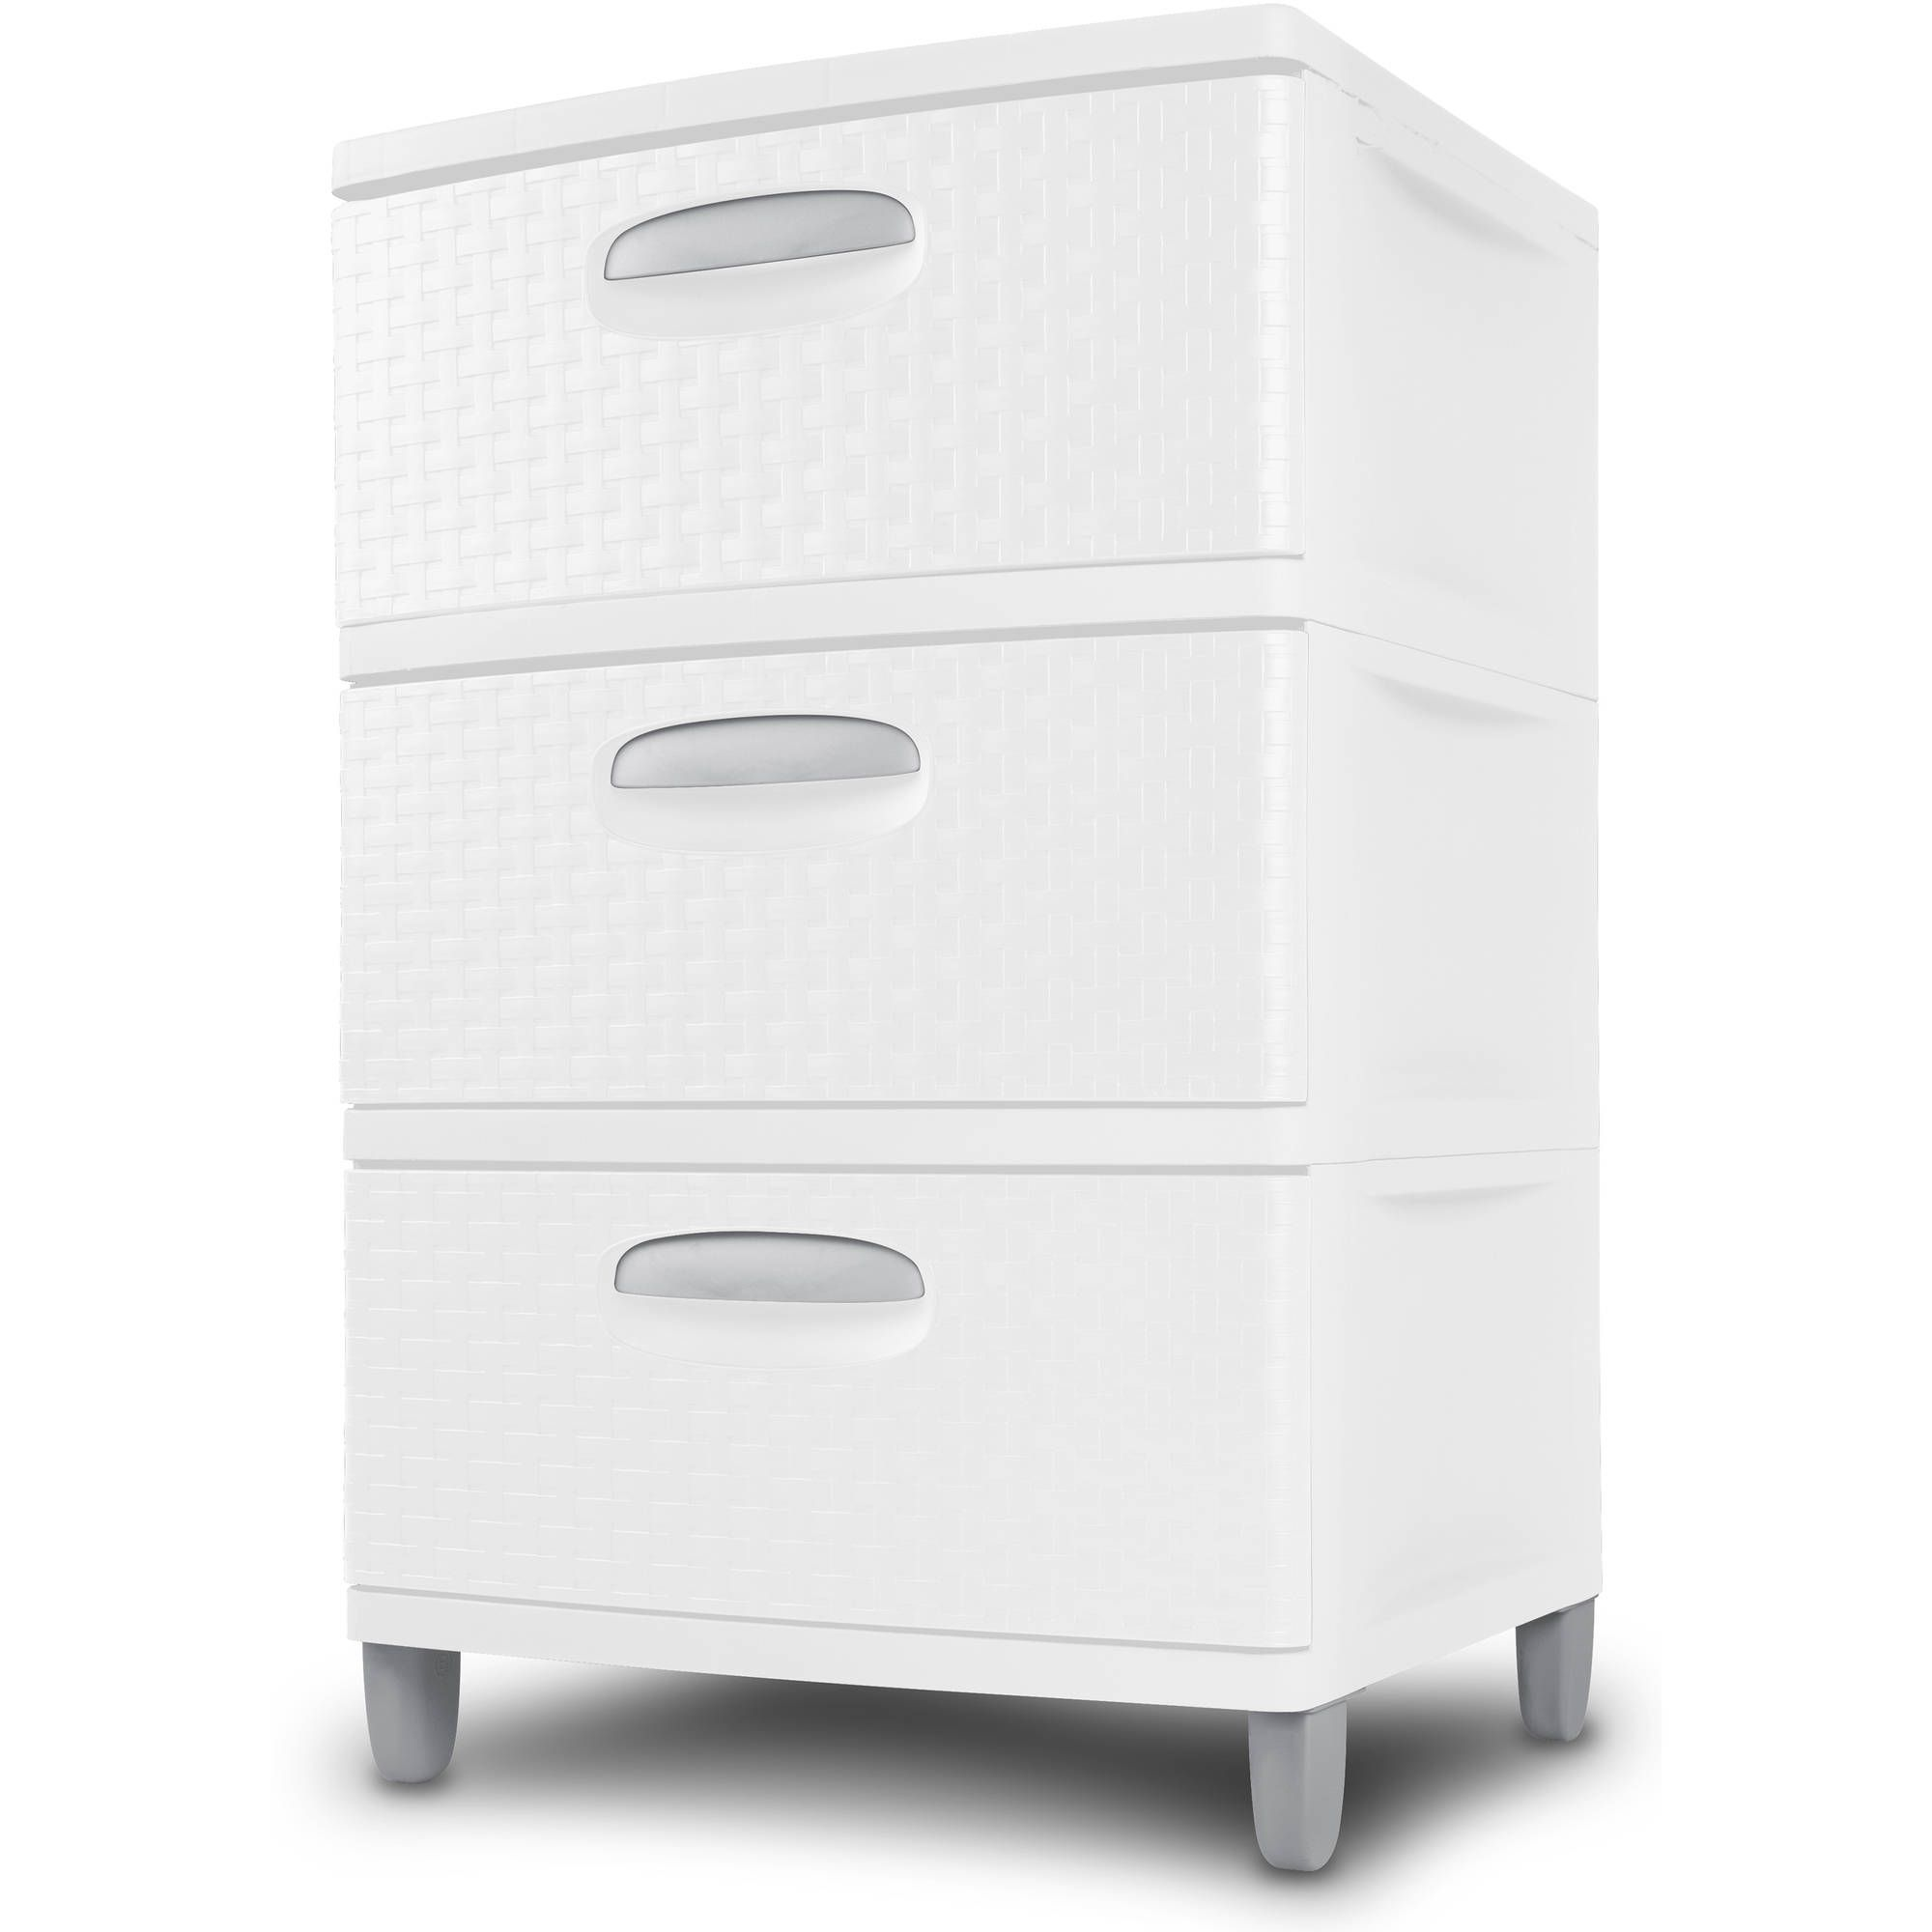 96 Reference Of 3 Drawer Plastic Storage Cabinet In 2020 Plastic Storage Cabinets Plastic Storage Drawers Plastic Drawers